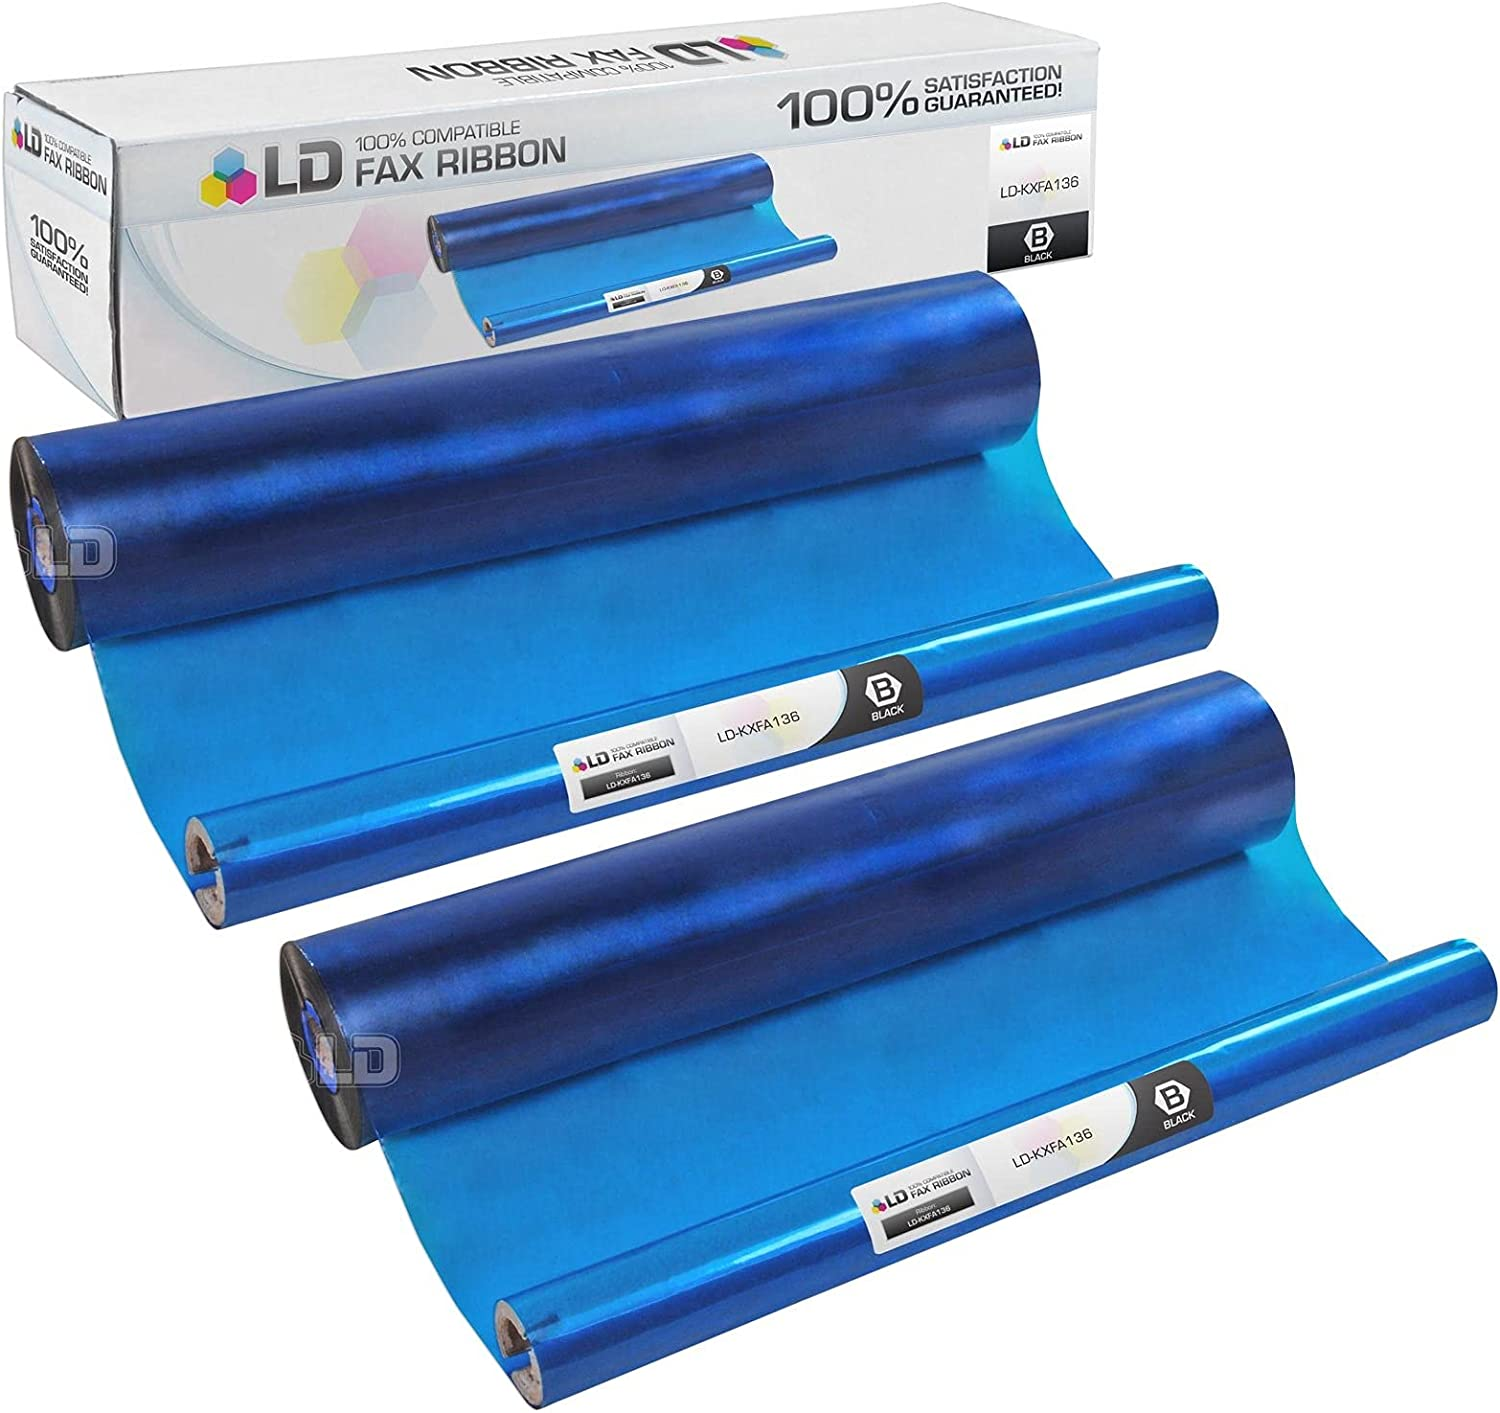 LD Compatible Fax Refill Roll Replacement for Panasonic KX-FA136 (Black, 2-Pack)